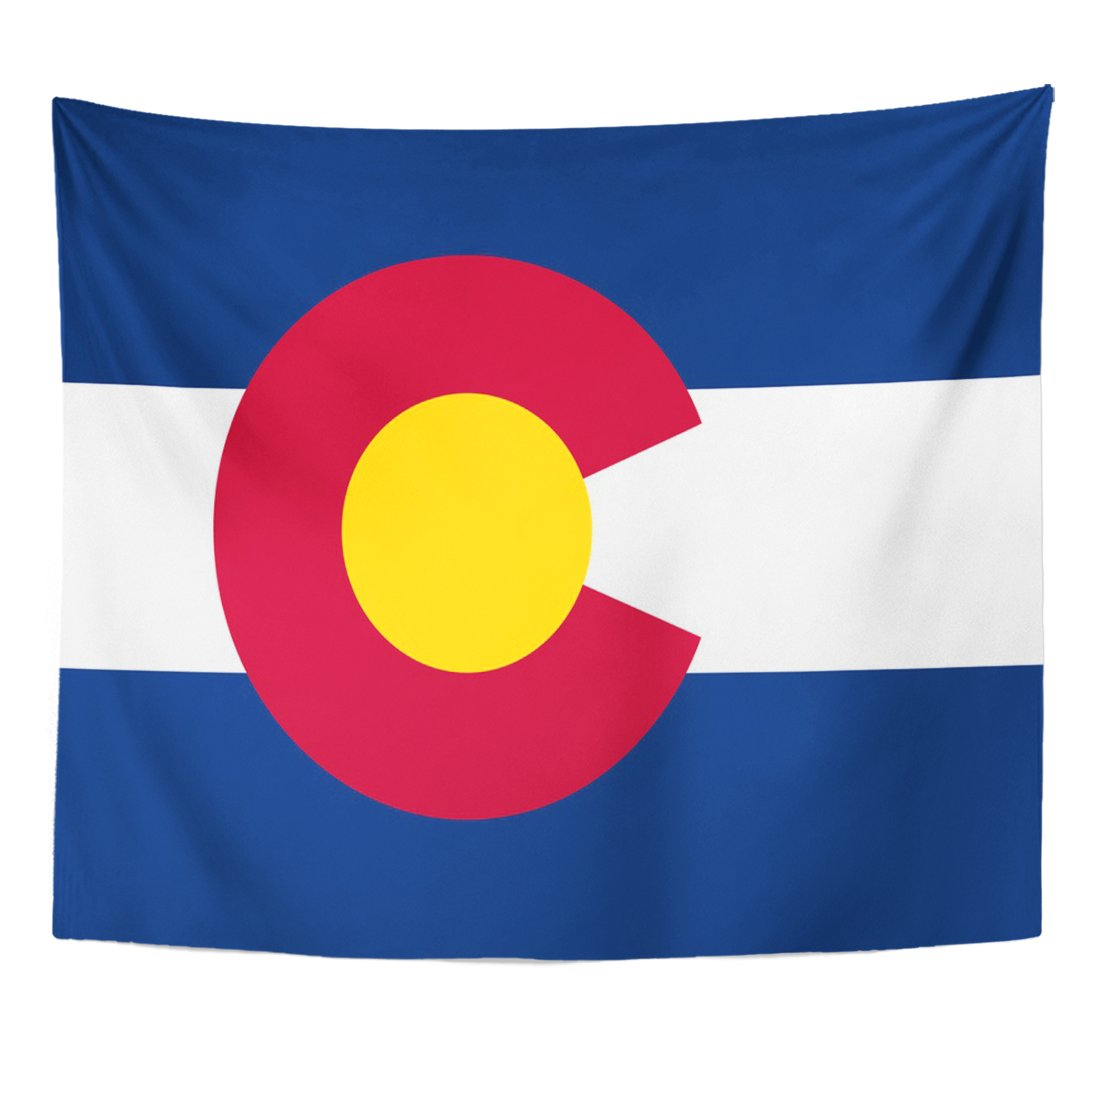 TOMPOP Tapestry State High Detailed Flag of Colorado Abstract America Home Decor Wall Hanging for Living Room Bedroom Dorm 50x60 Inches